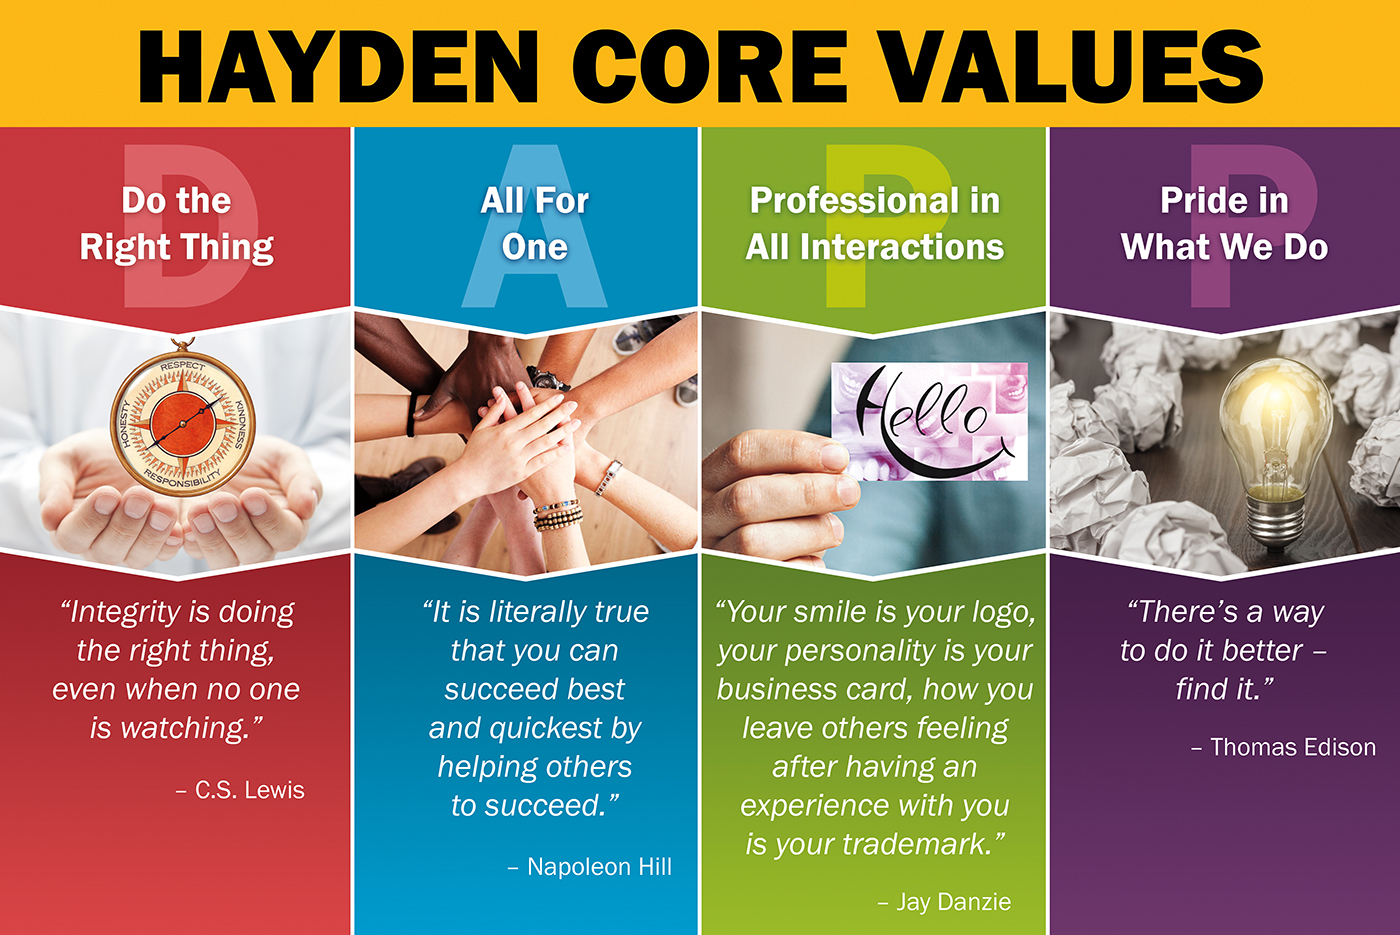 Hayden Consultants Core Values